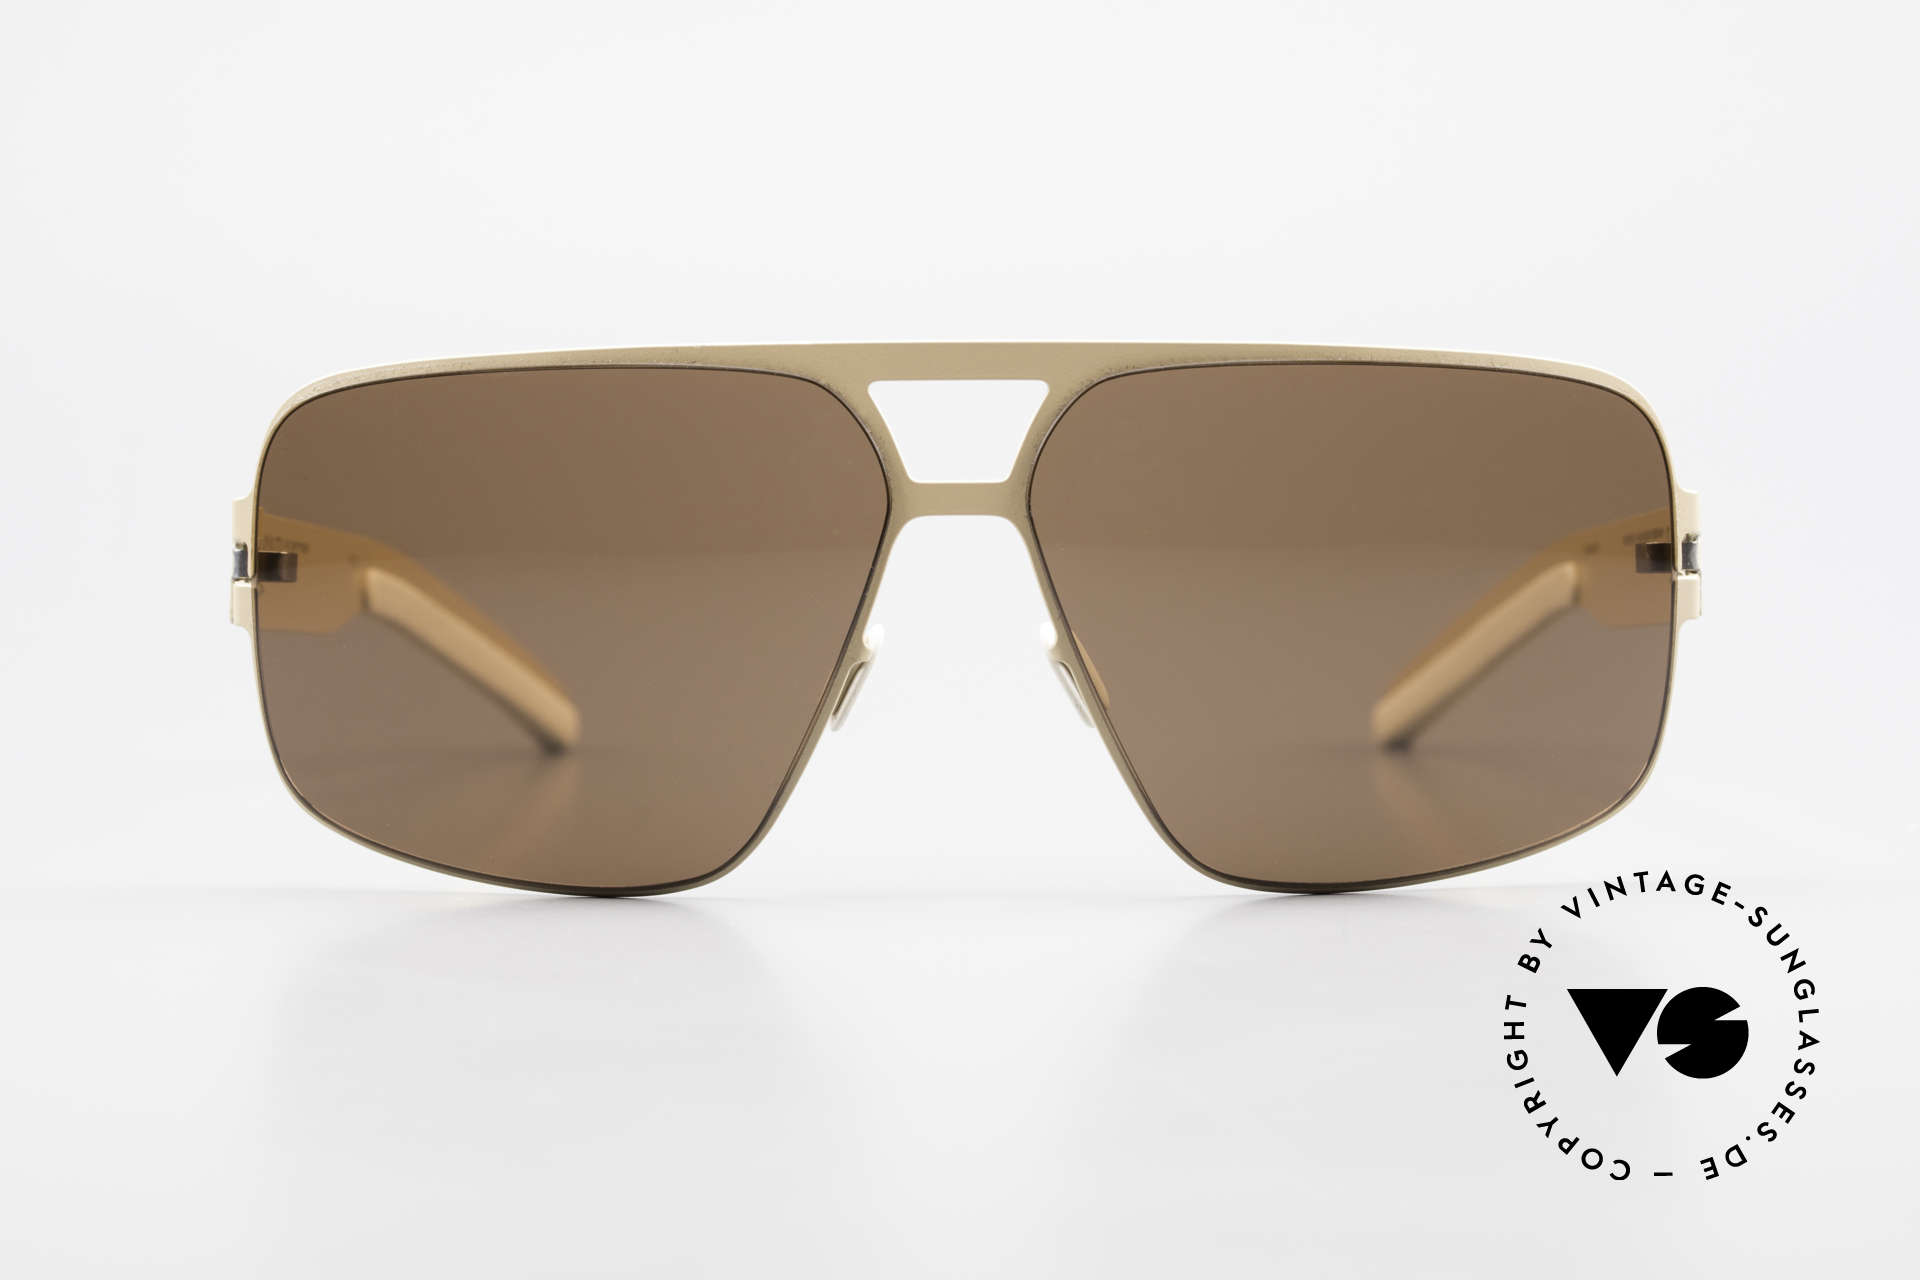 Mykita Tyrone 2011's Mykita Vintage Shades, MYKITA: the youngest brand in our vintage collection, Made for Men